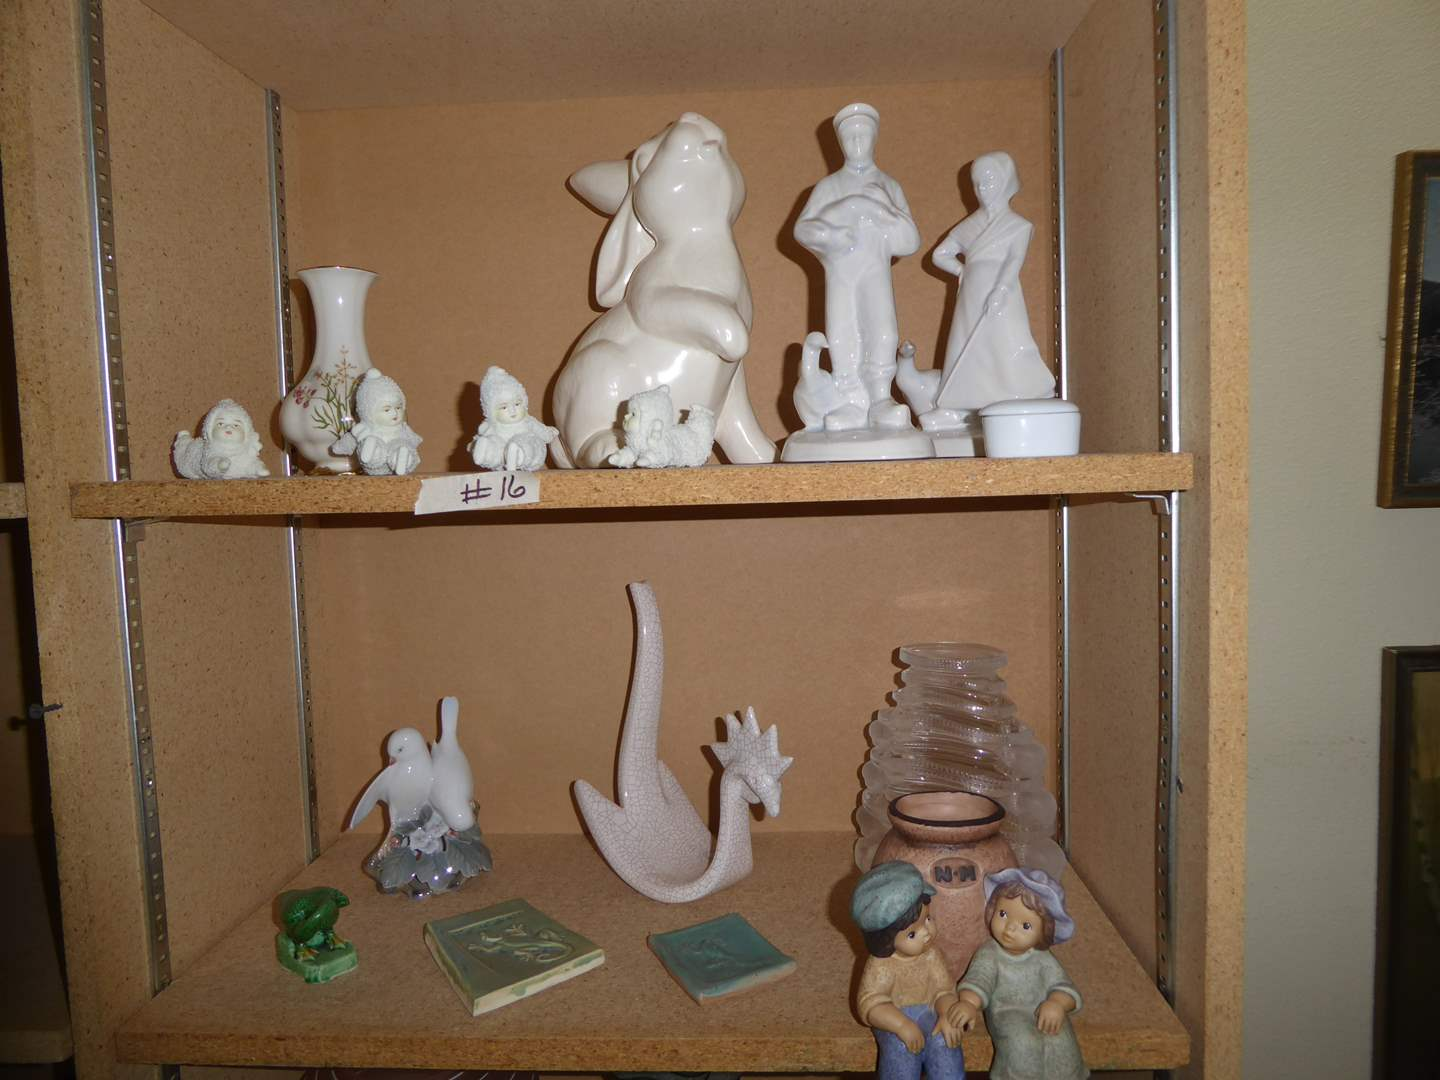 Lot # 16 - Lidner Vase, Snow Babies, Goebel Figurine & More   (main image)